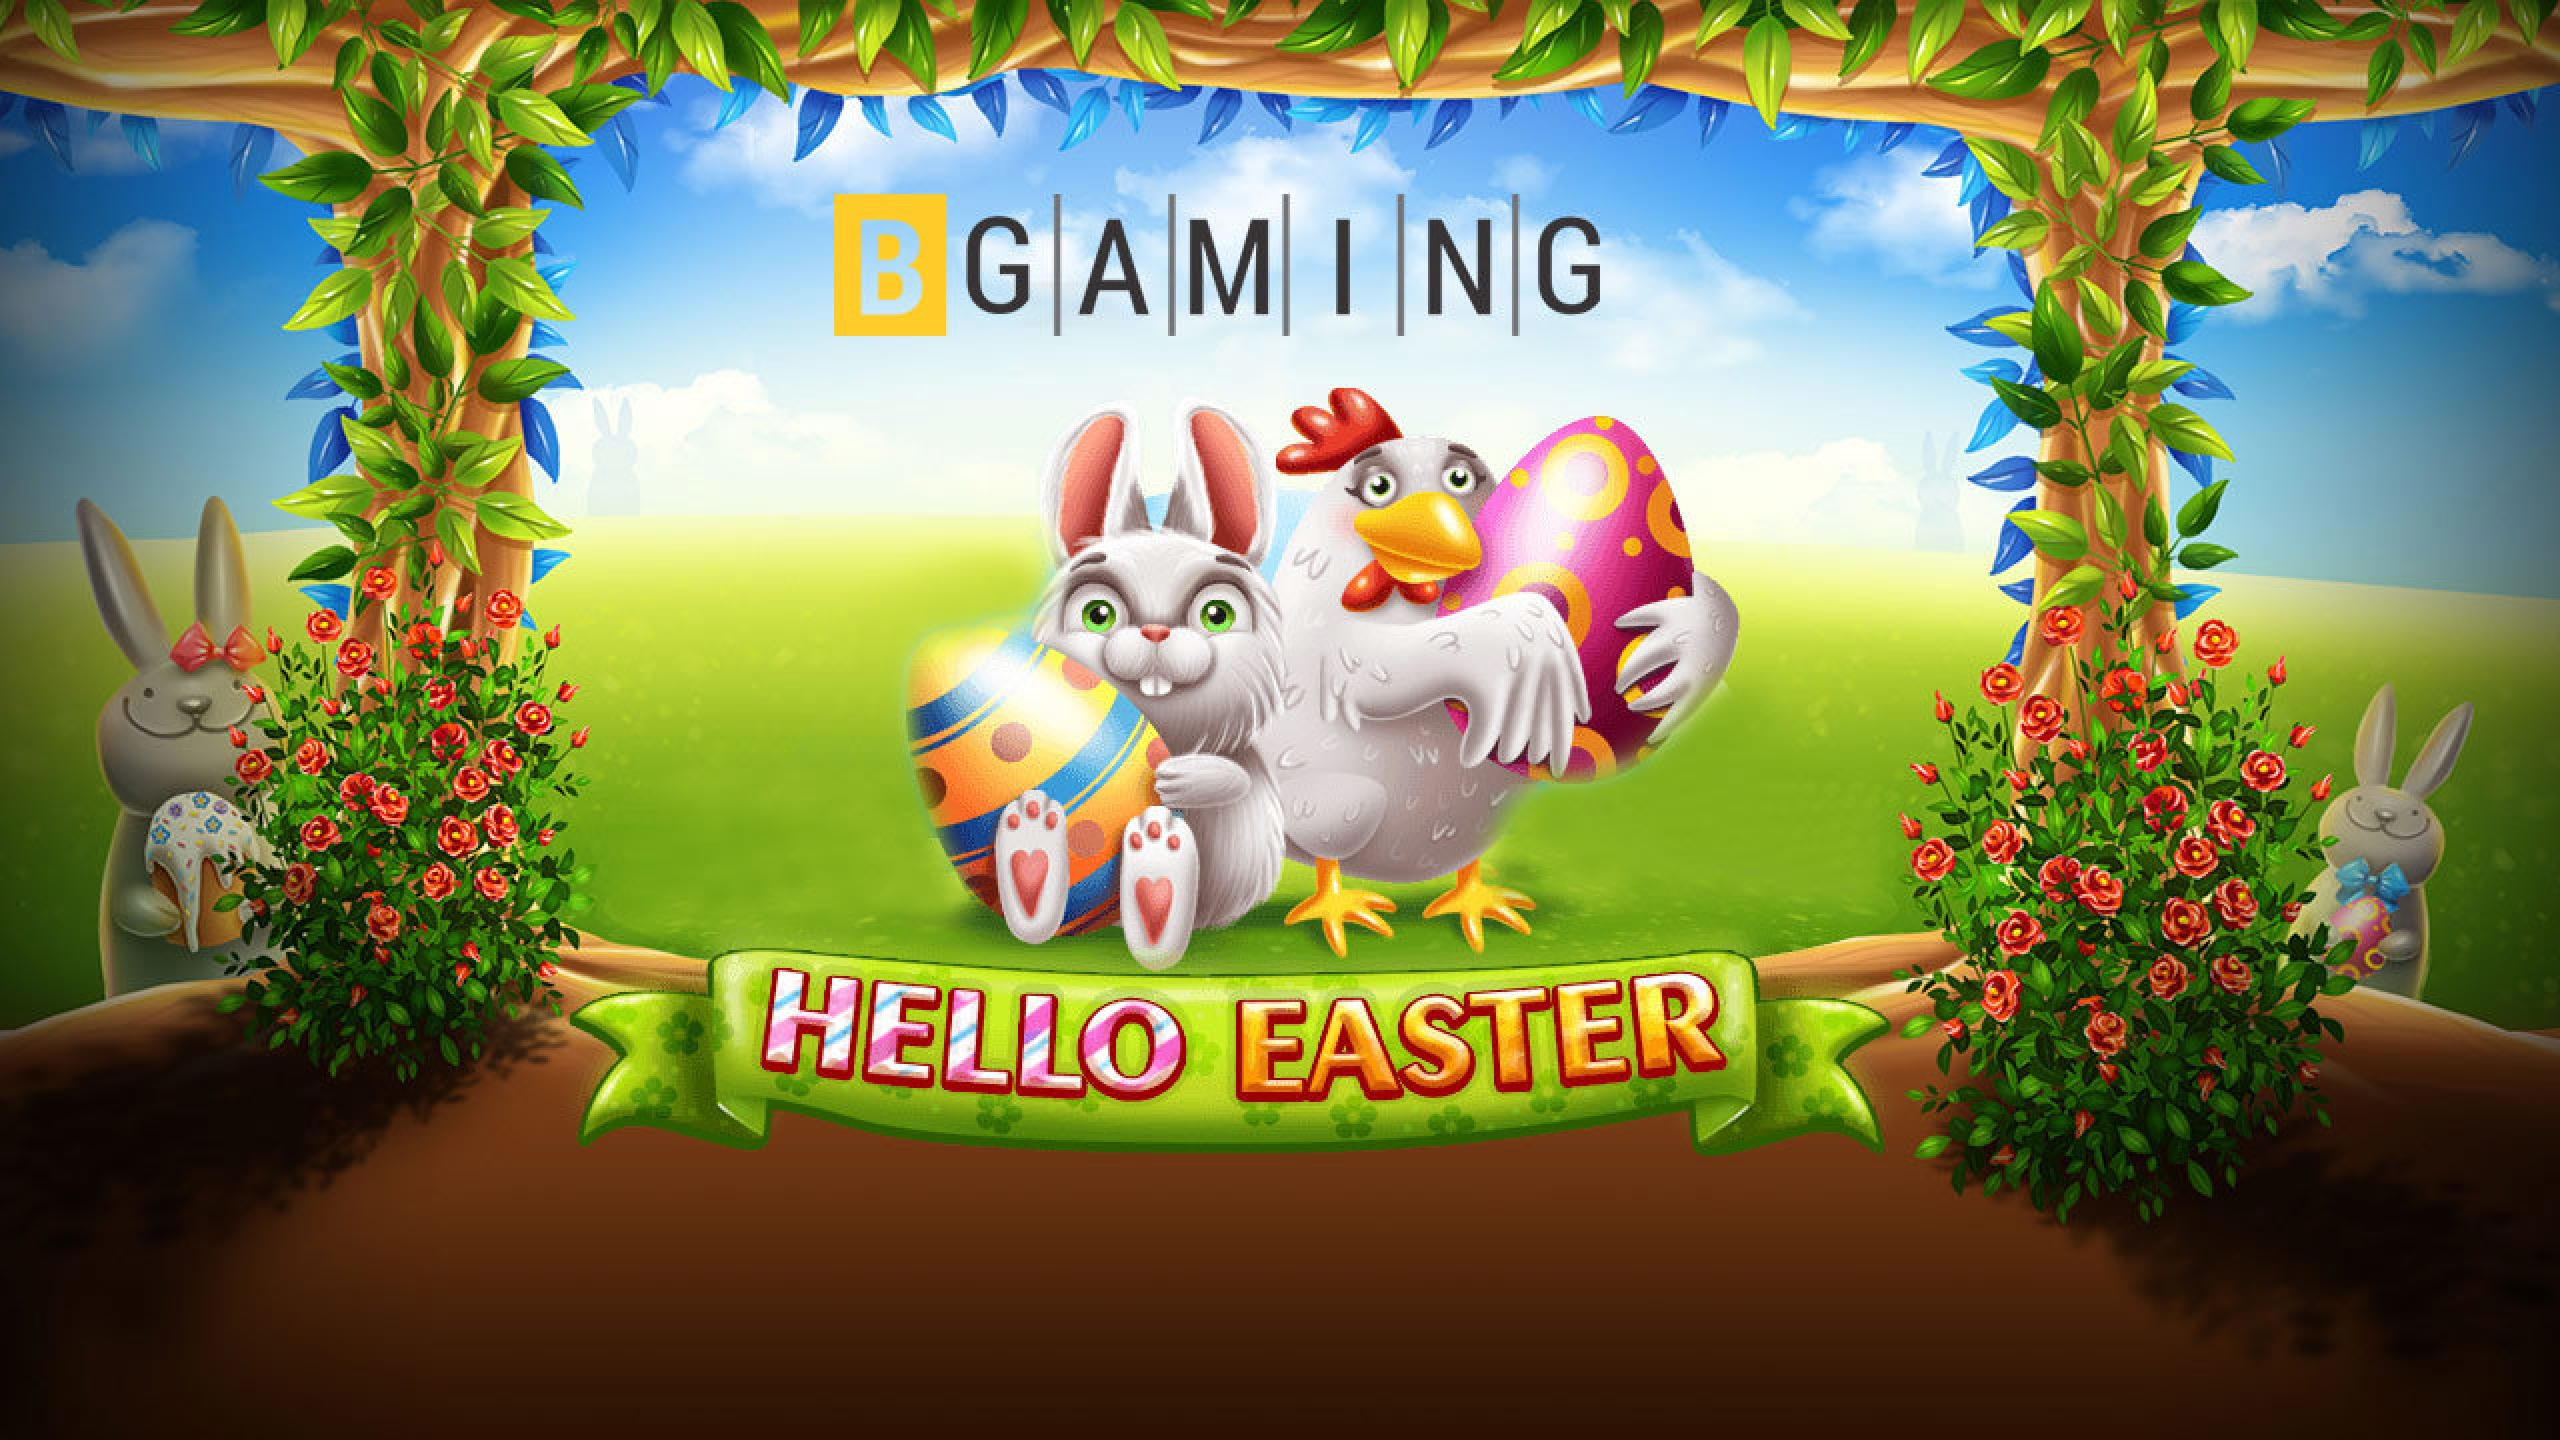 The Hello Easter Online Slot Demo Game by BGAMING